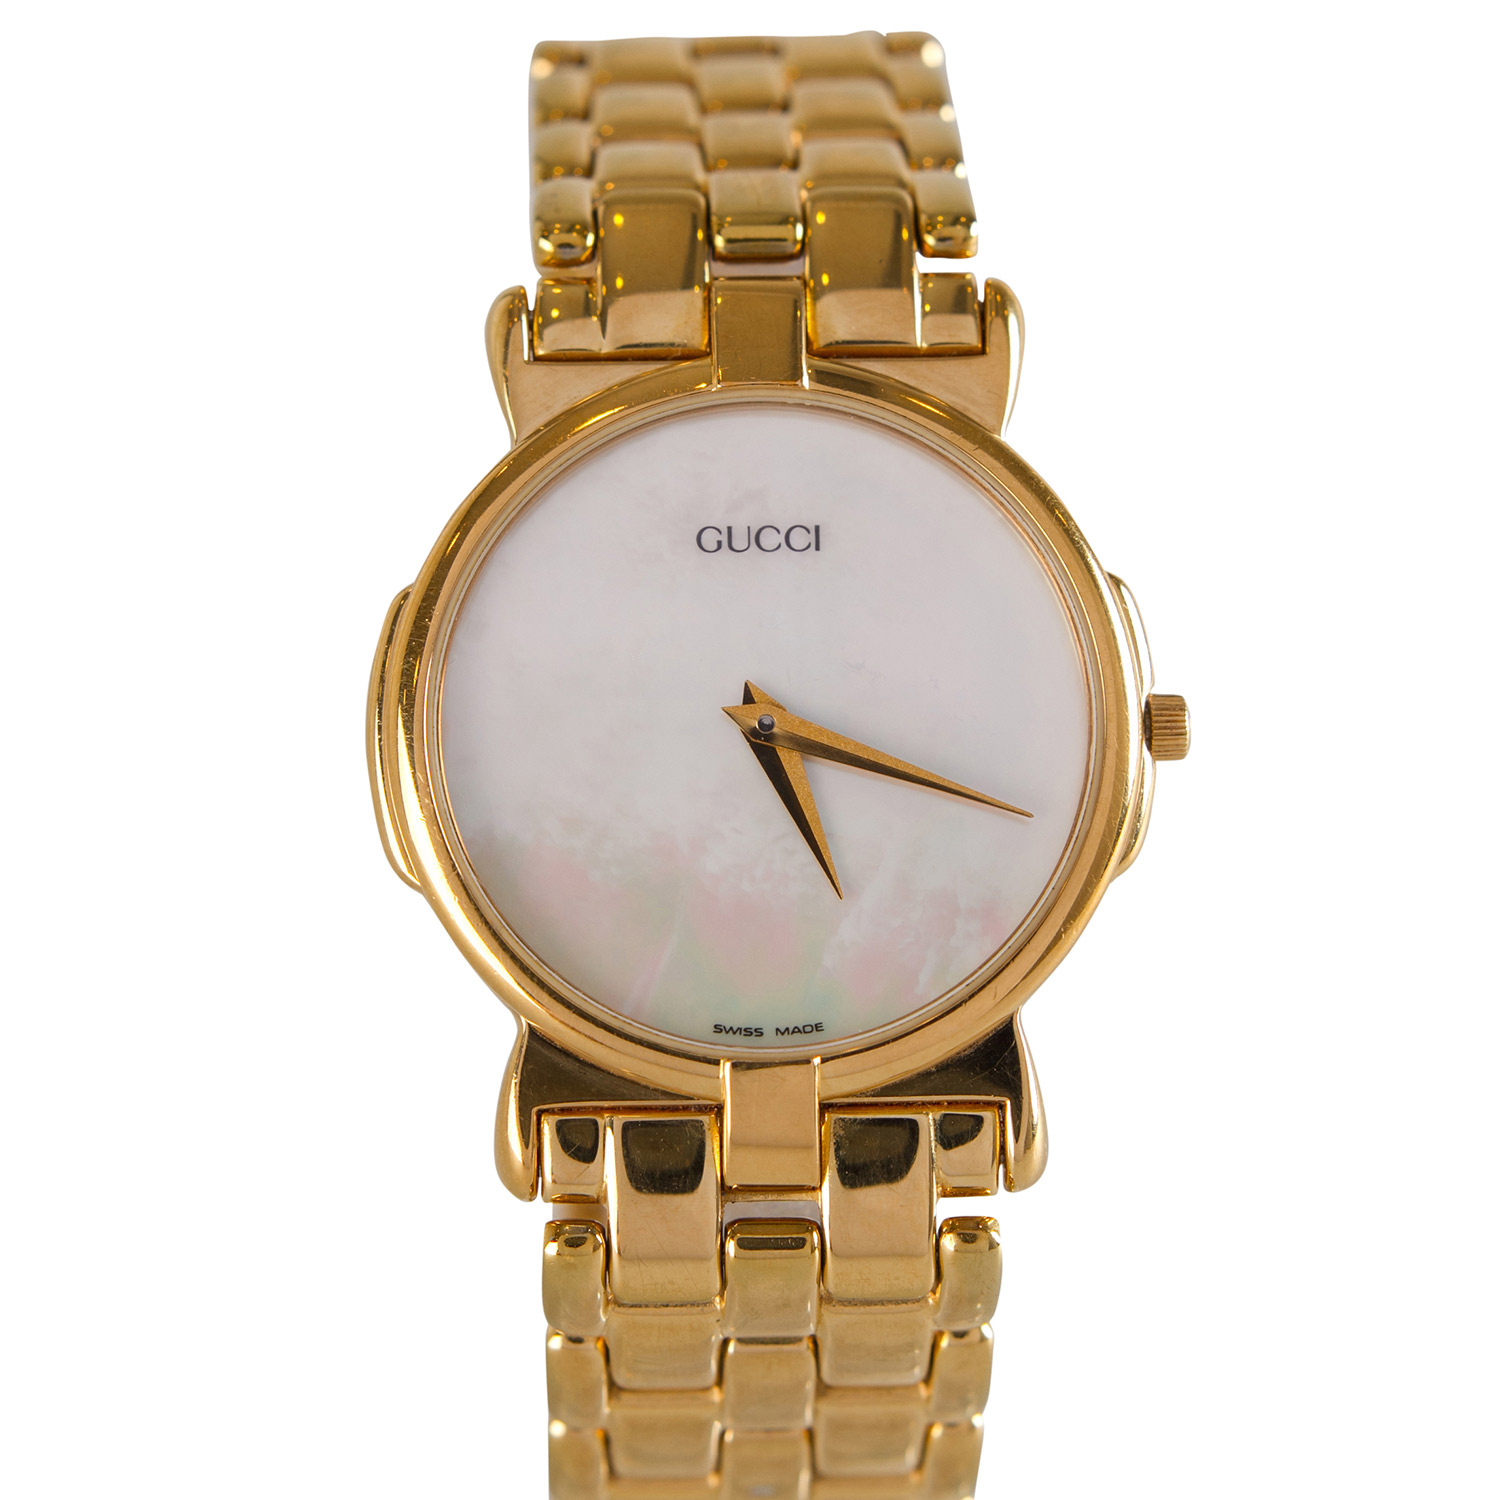 Gucci Mother of Pearl Gold Plated 3400M Men's Wristwatch 30 mm